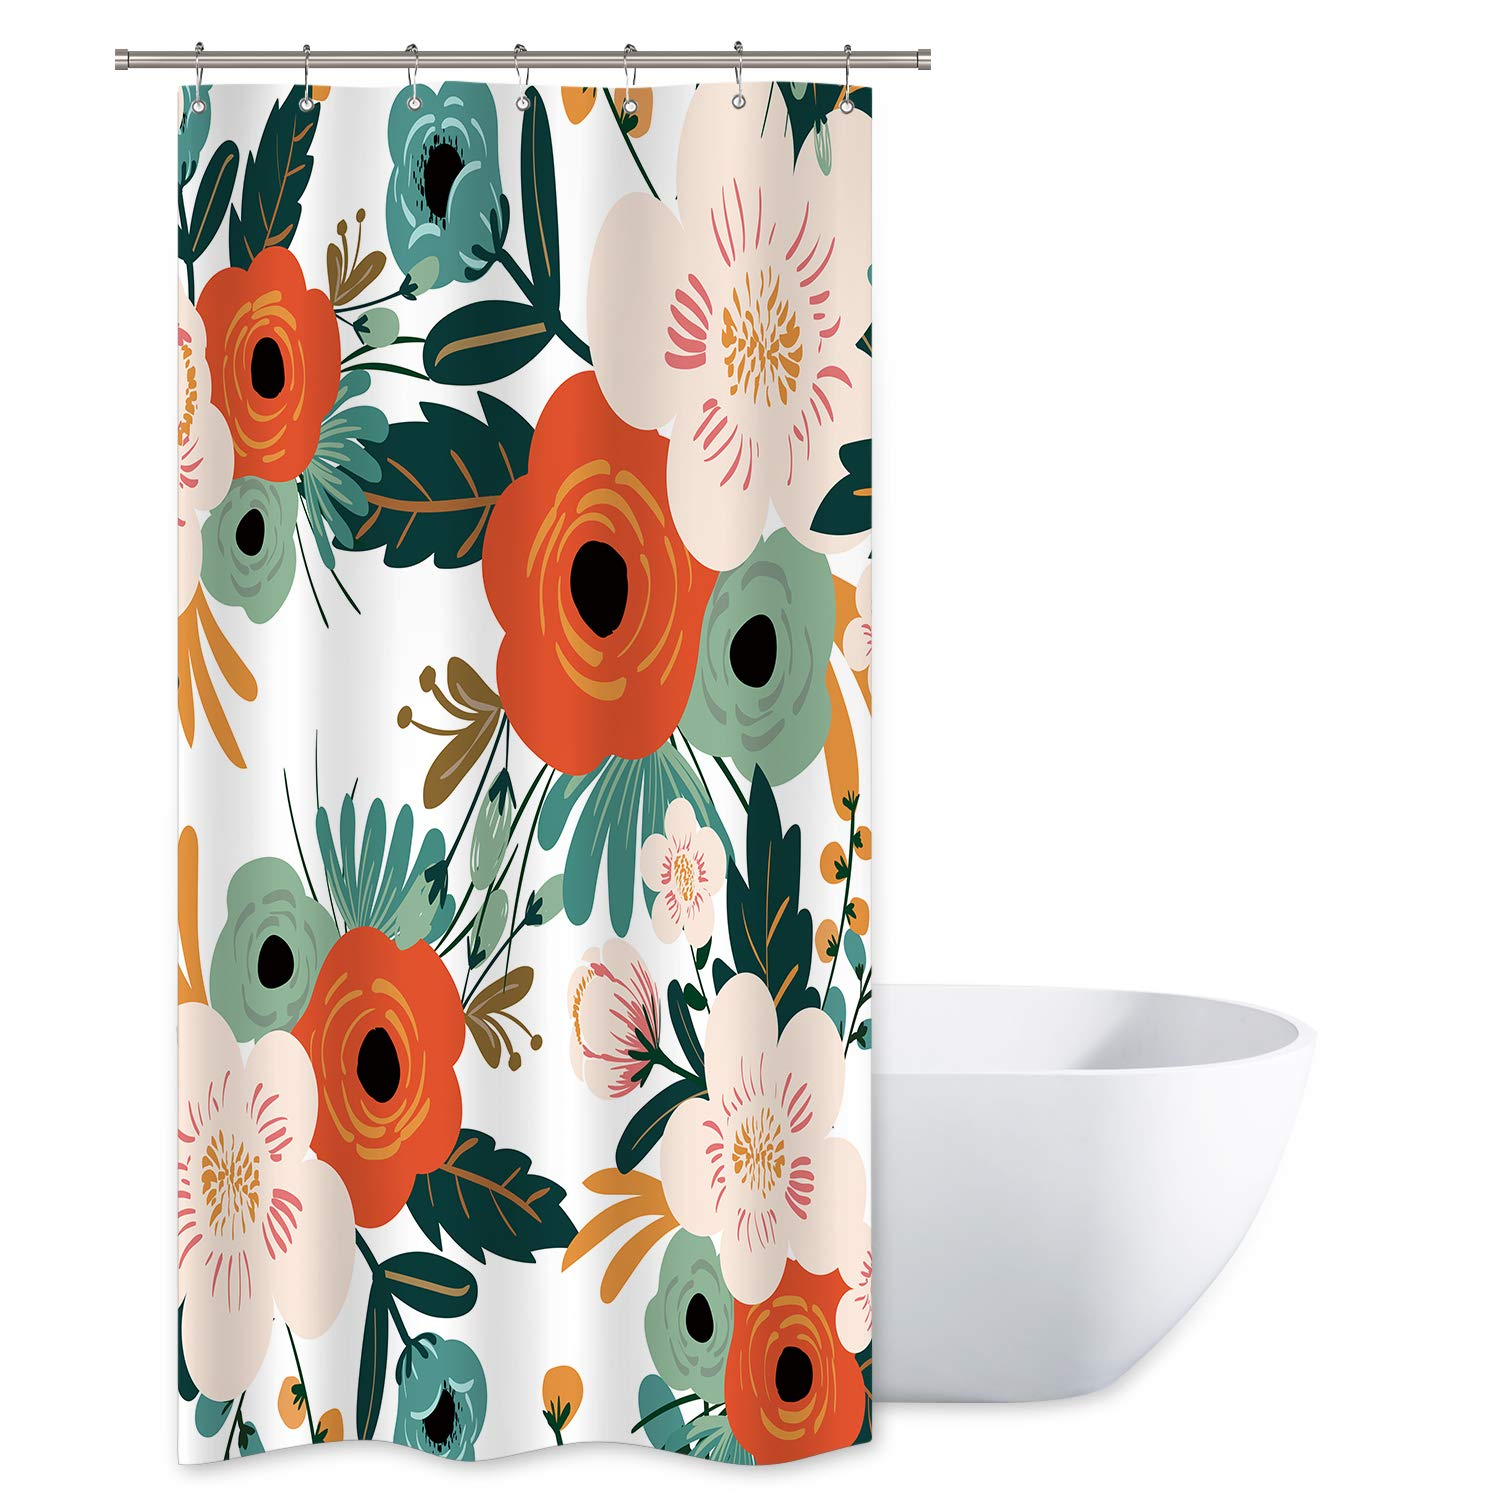 Riyidecor Spring Flower Shower Curtain Set Season Floral Green Bathroom Peony Decor Fabric Panel Polyester Waterproof 36x72 Inch with 7 Pack Plastic Shower Hooks